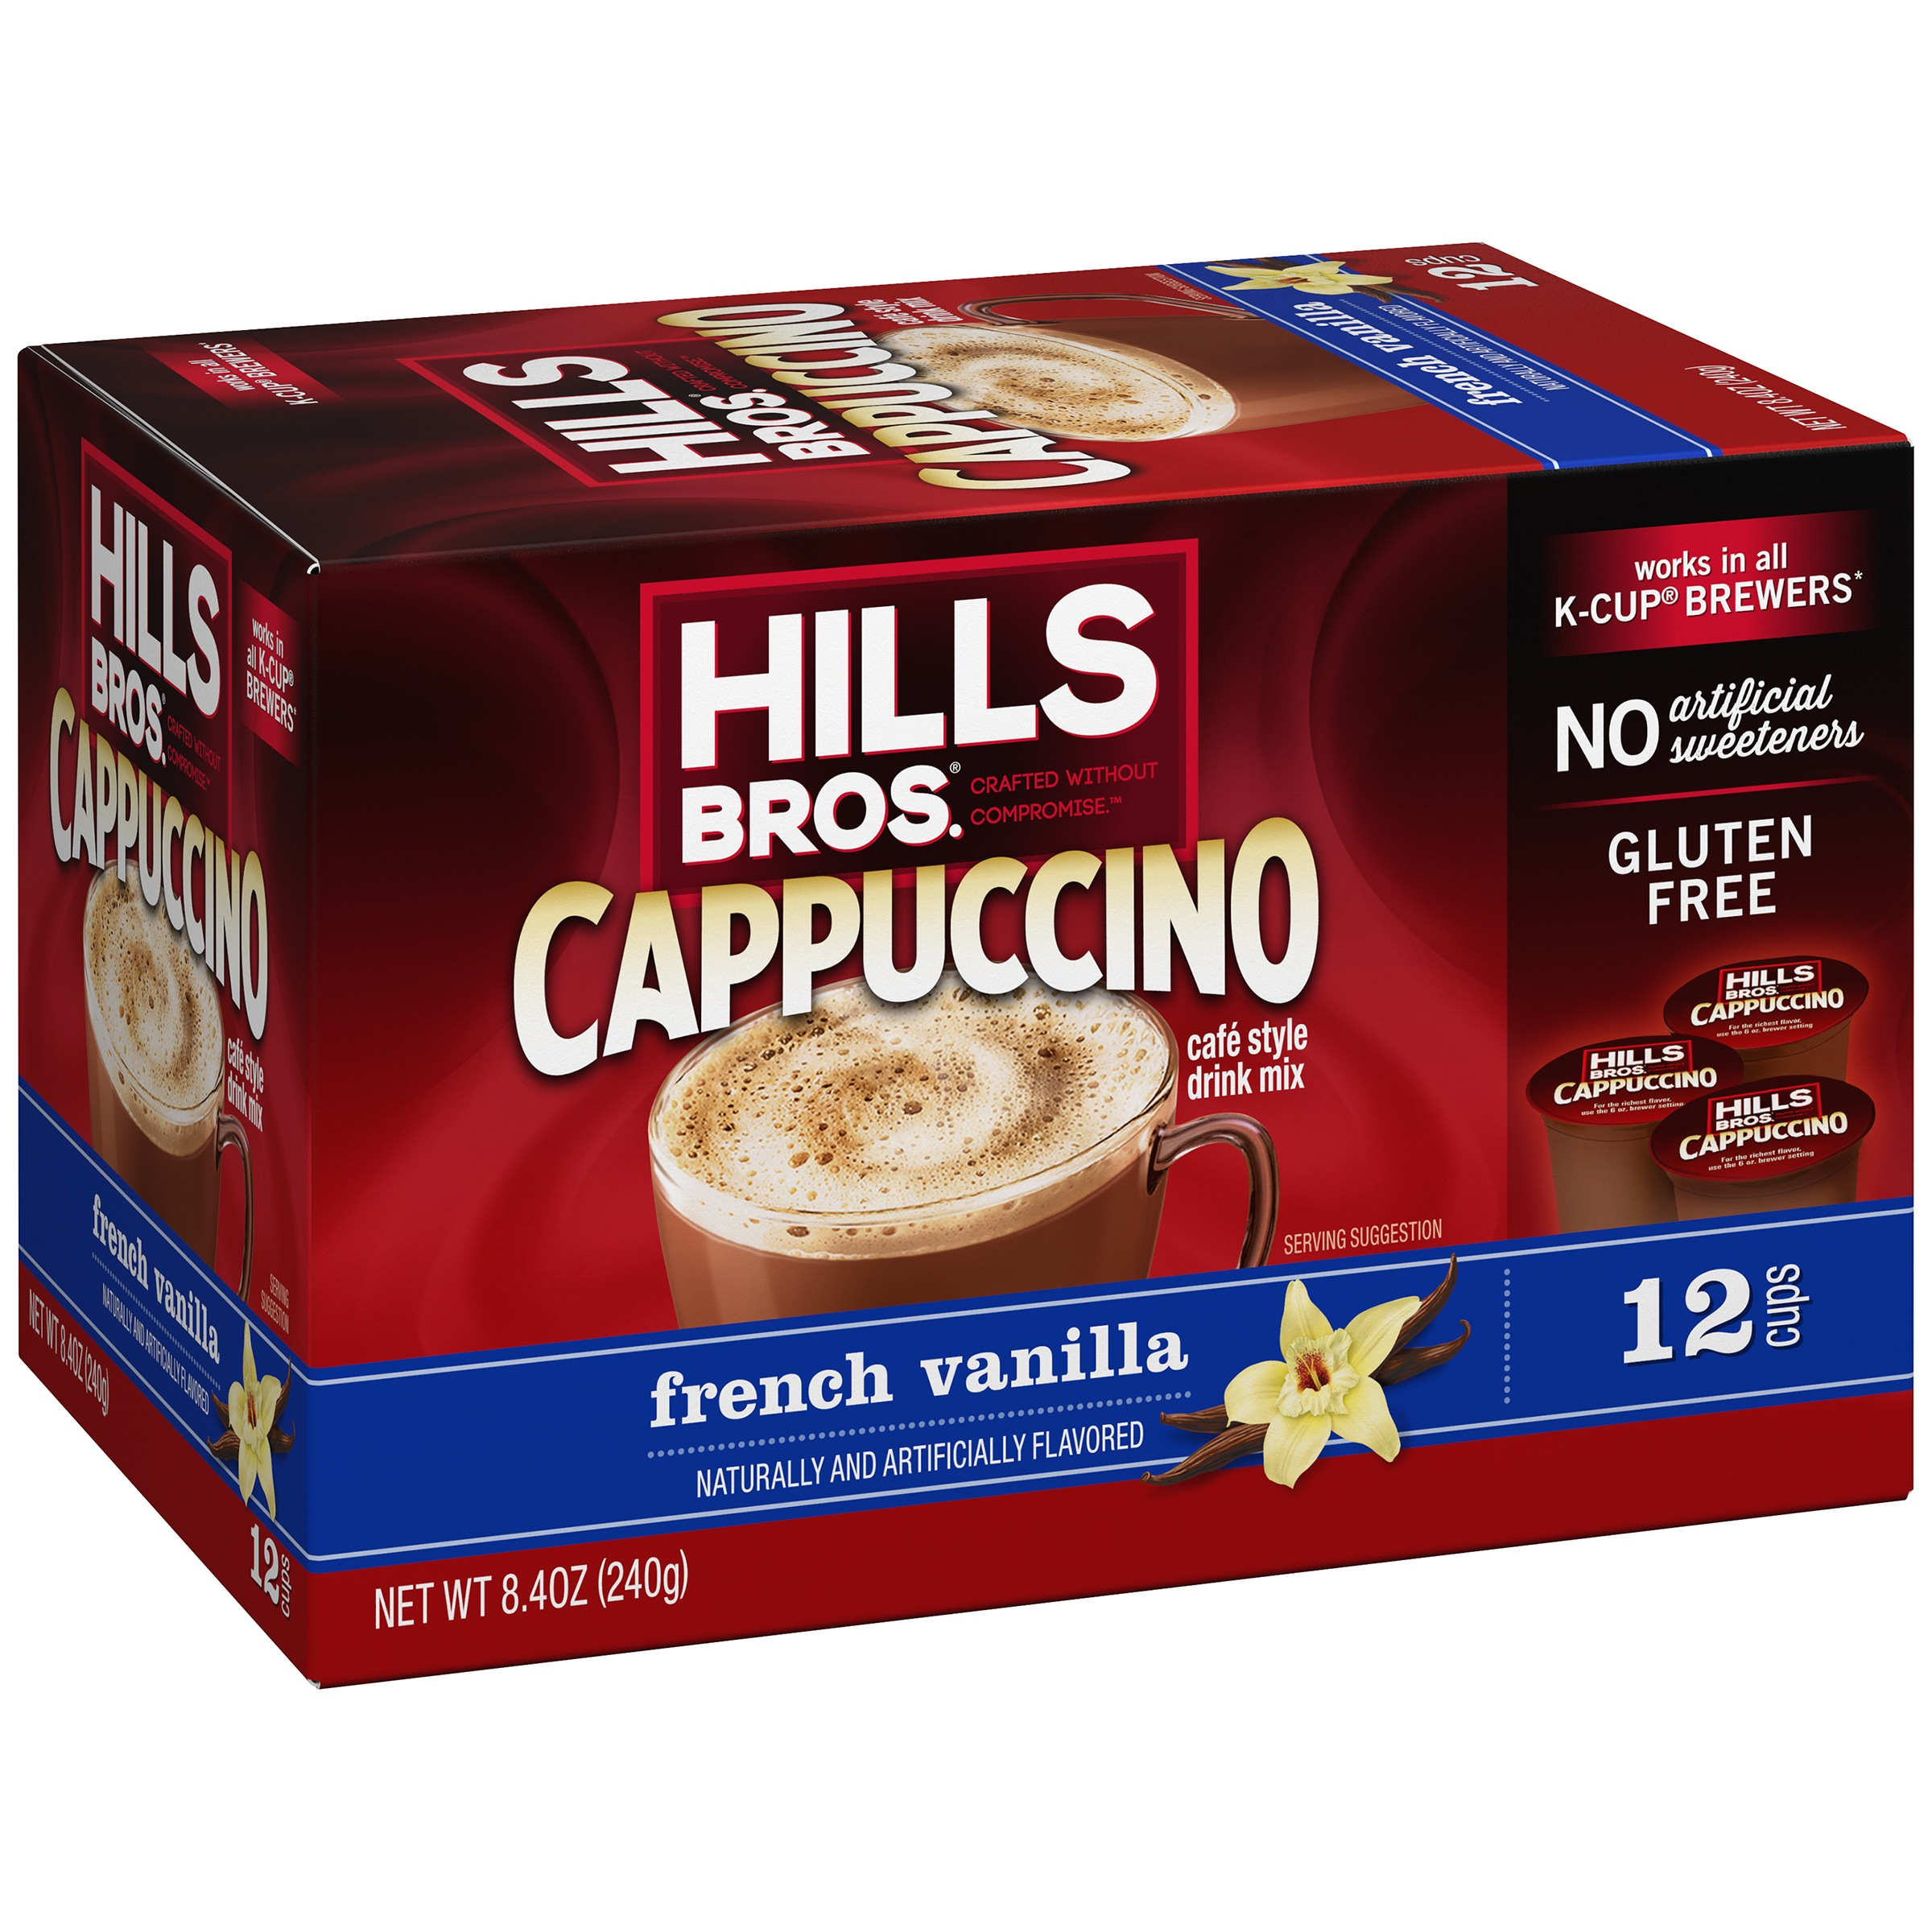 Hills Bros Cappuccino French Vanilla Café Style Drink Mix 12 Cups 8.4oz